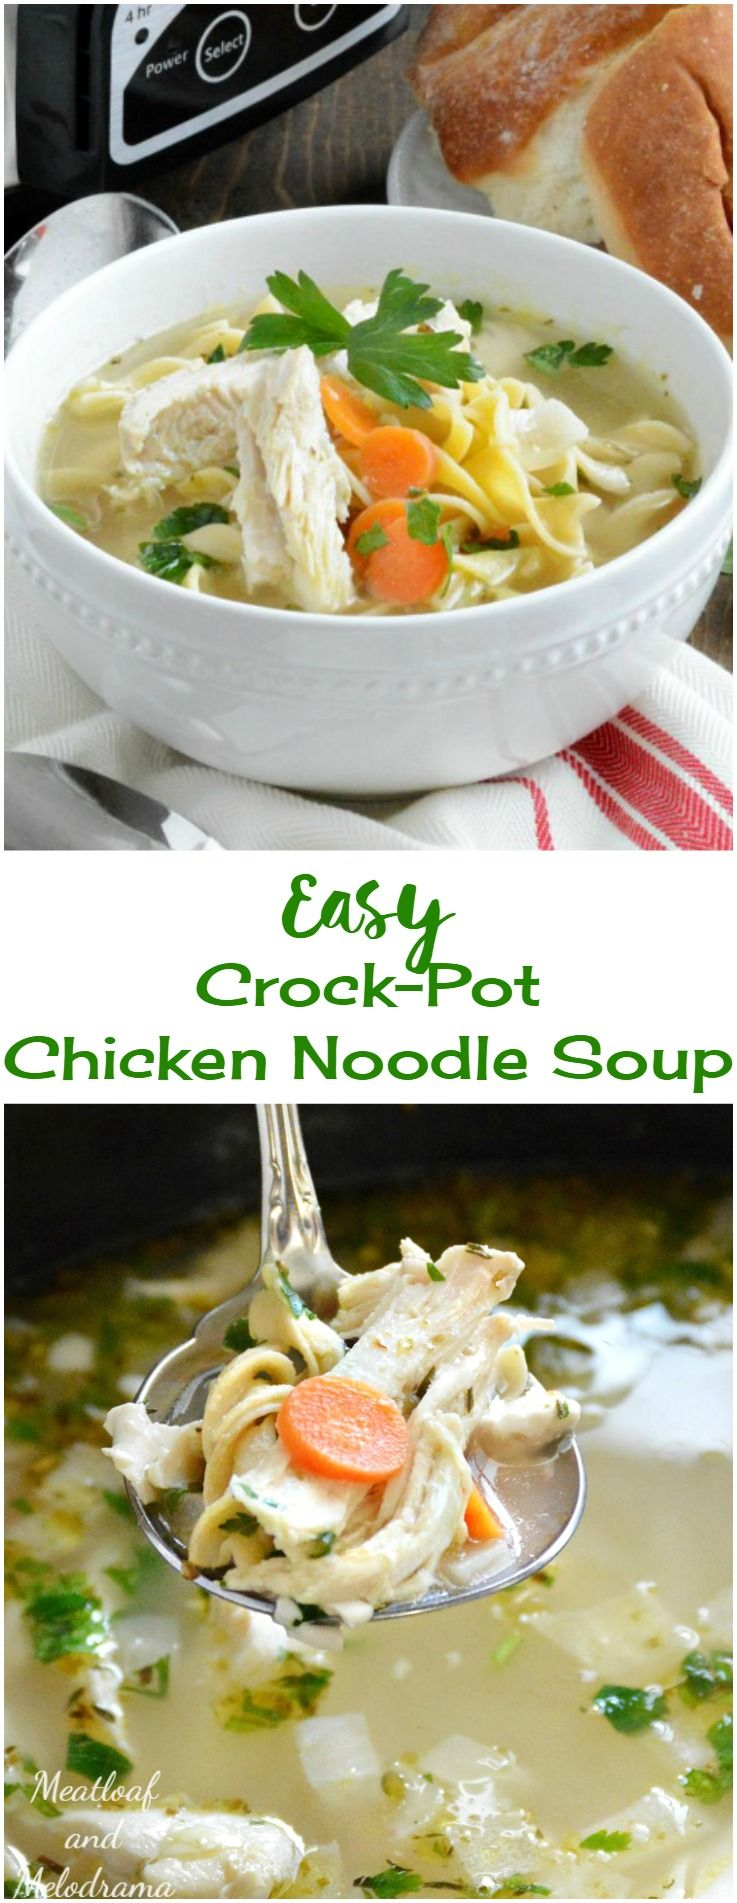 easy crockpot chicken noodle soup  recipe  slow cooker